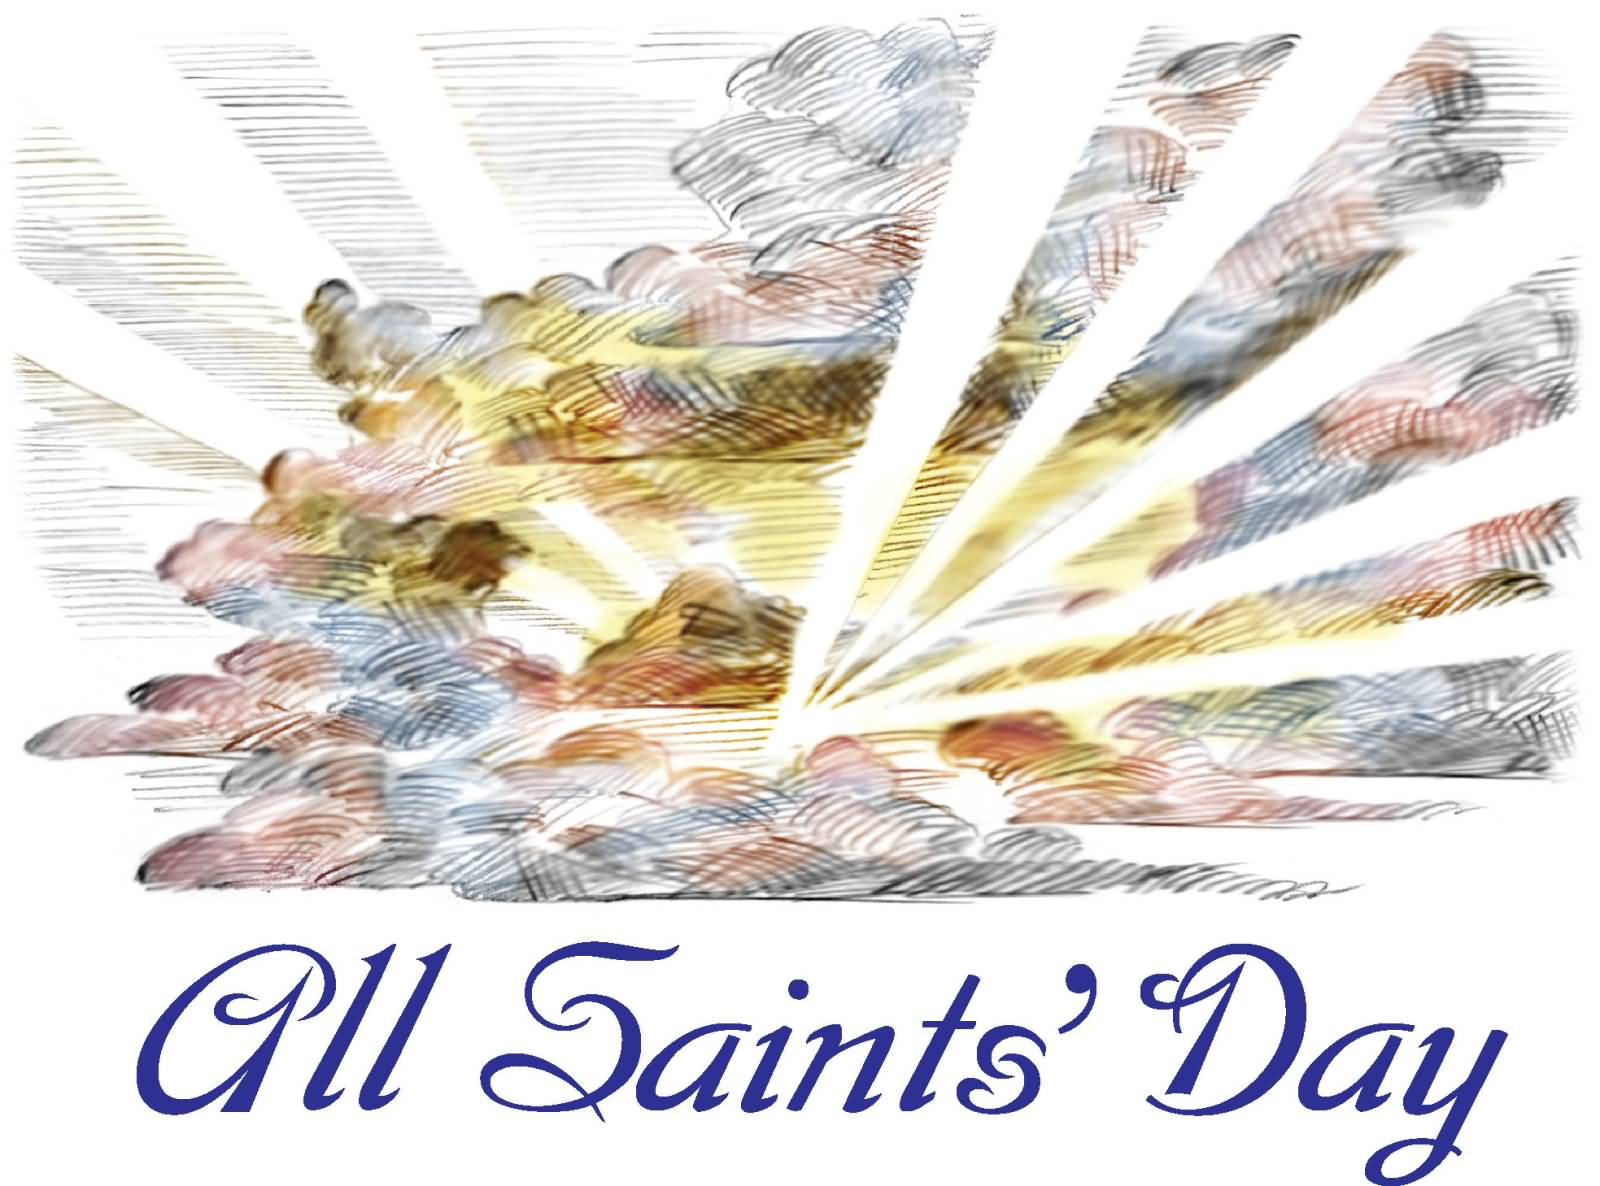 https://www.askideas.com/media/86/All-Saints-Day-Wishes-Wallpaper.jpg